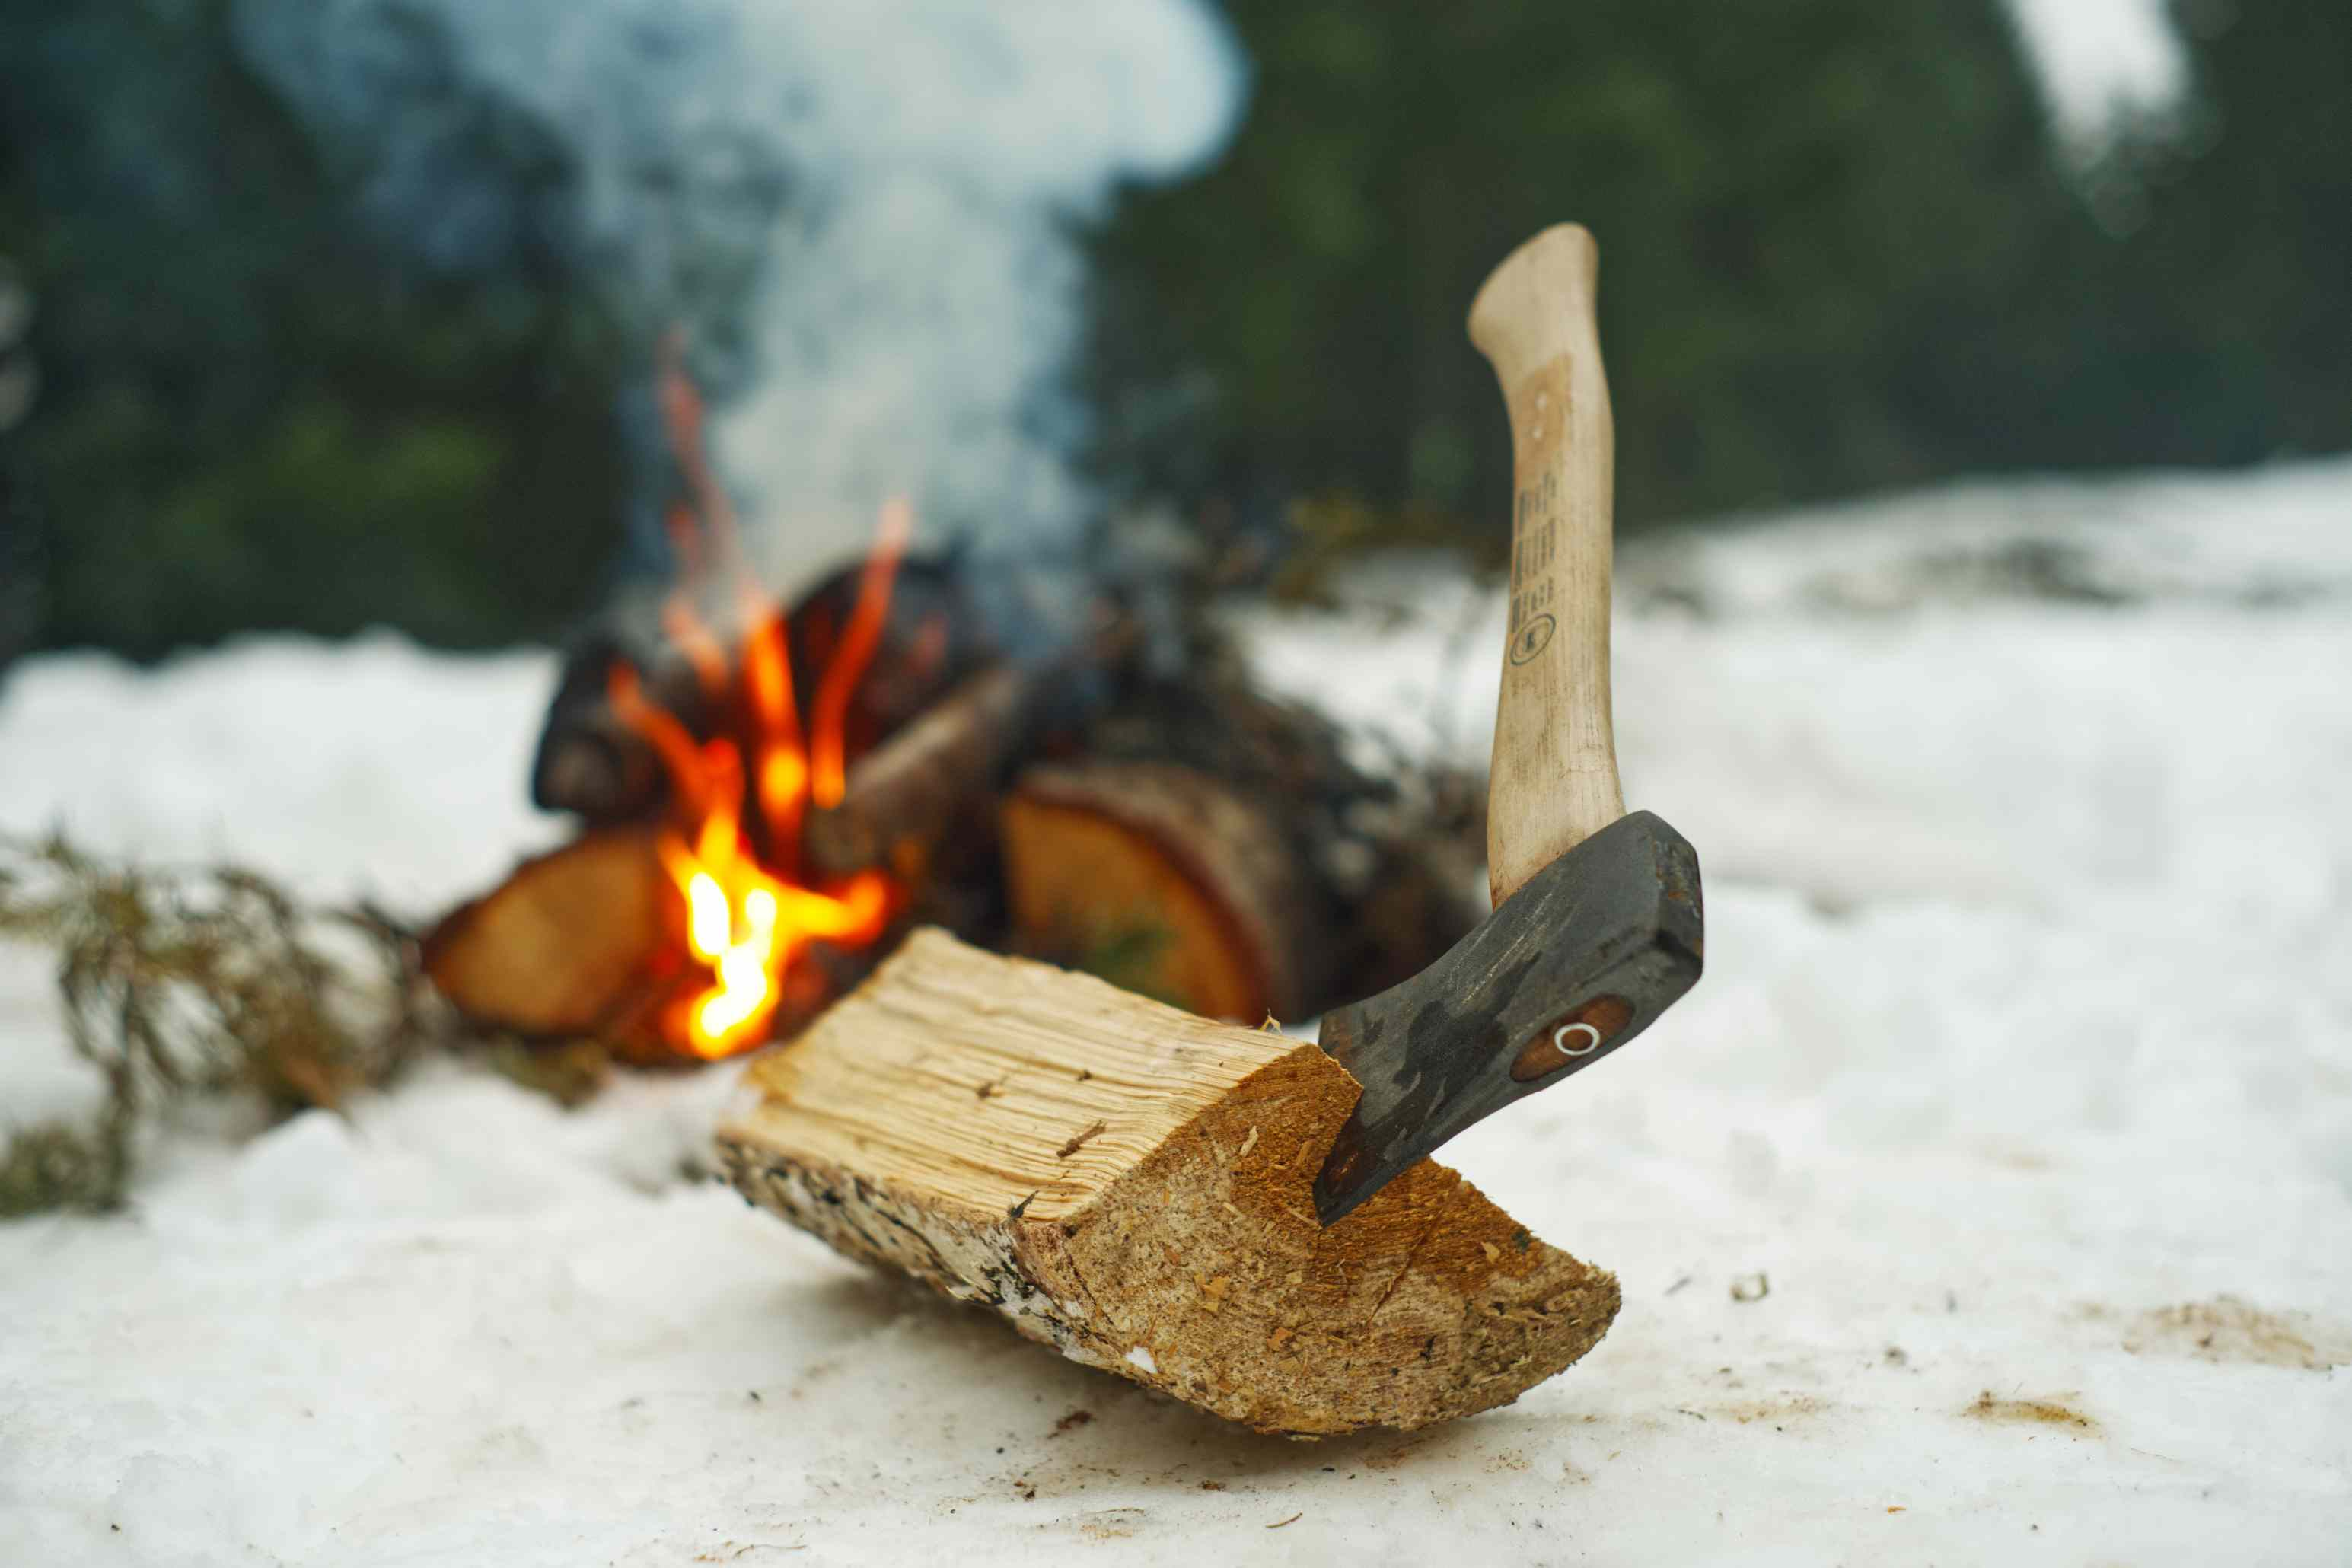 large axe in firewood next to campfire in snow